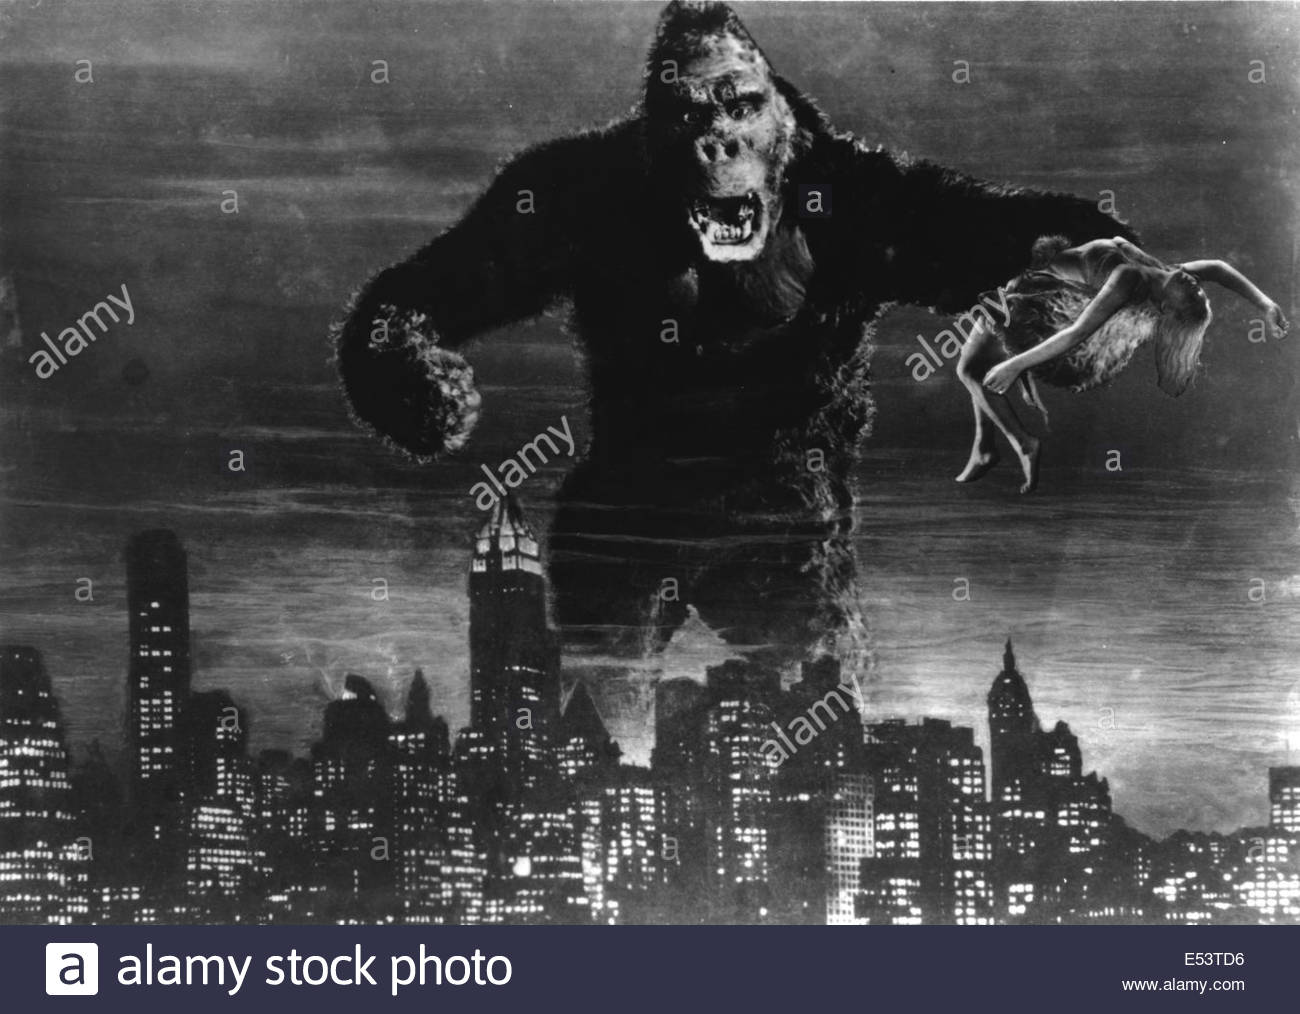 KING KONG (1933) - Courtesy Granamour Weems Collection.  Editorial use only.  Licensee must obtain appropriate permissions - Stock Image